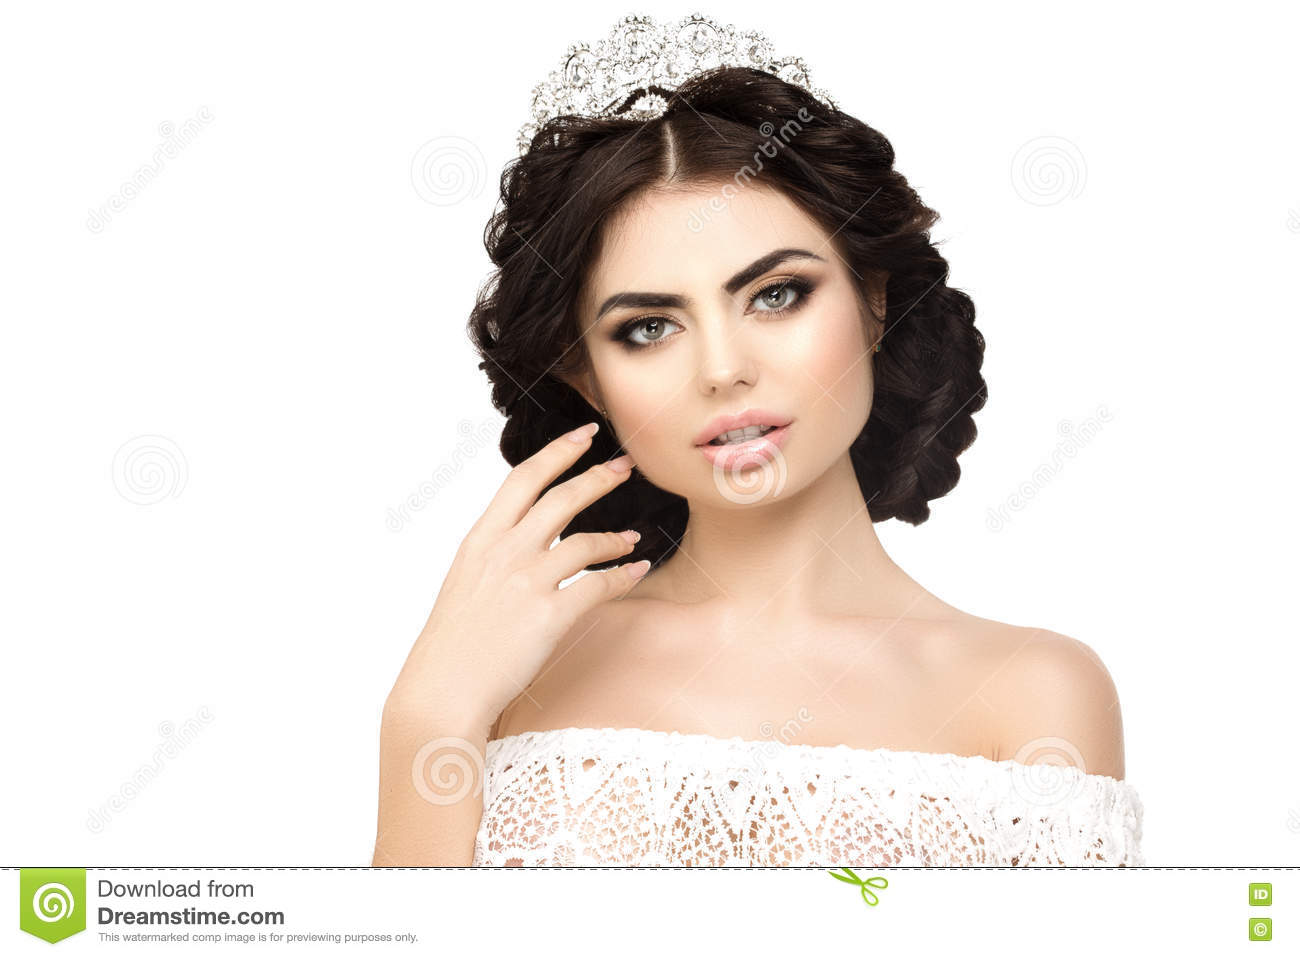 Woman Lux Crown Queen Princess White Background Luxury Girl Sh